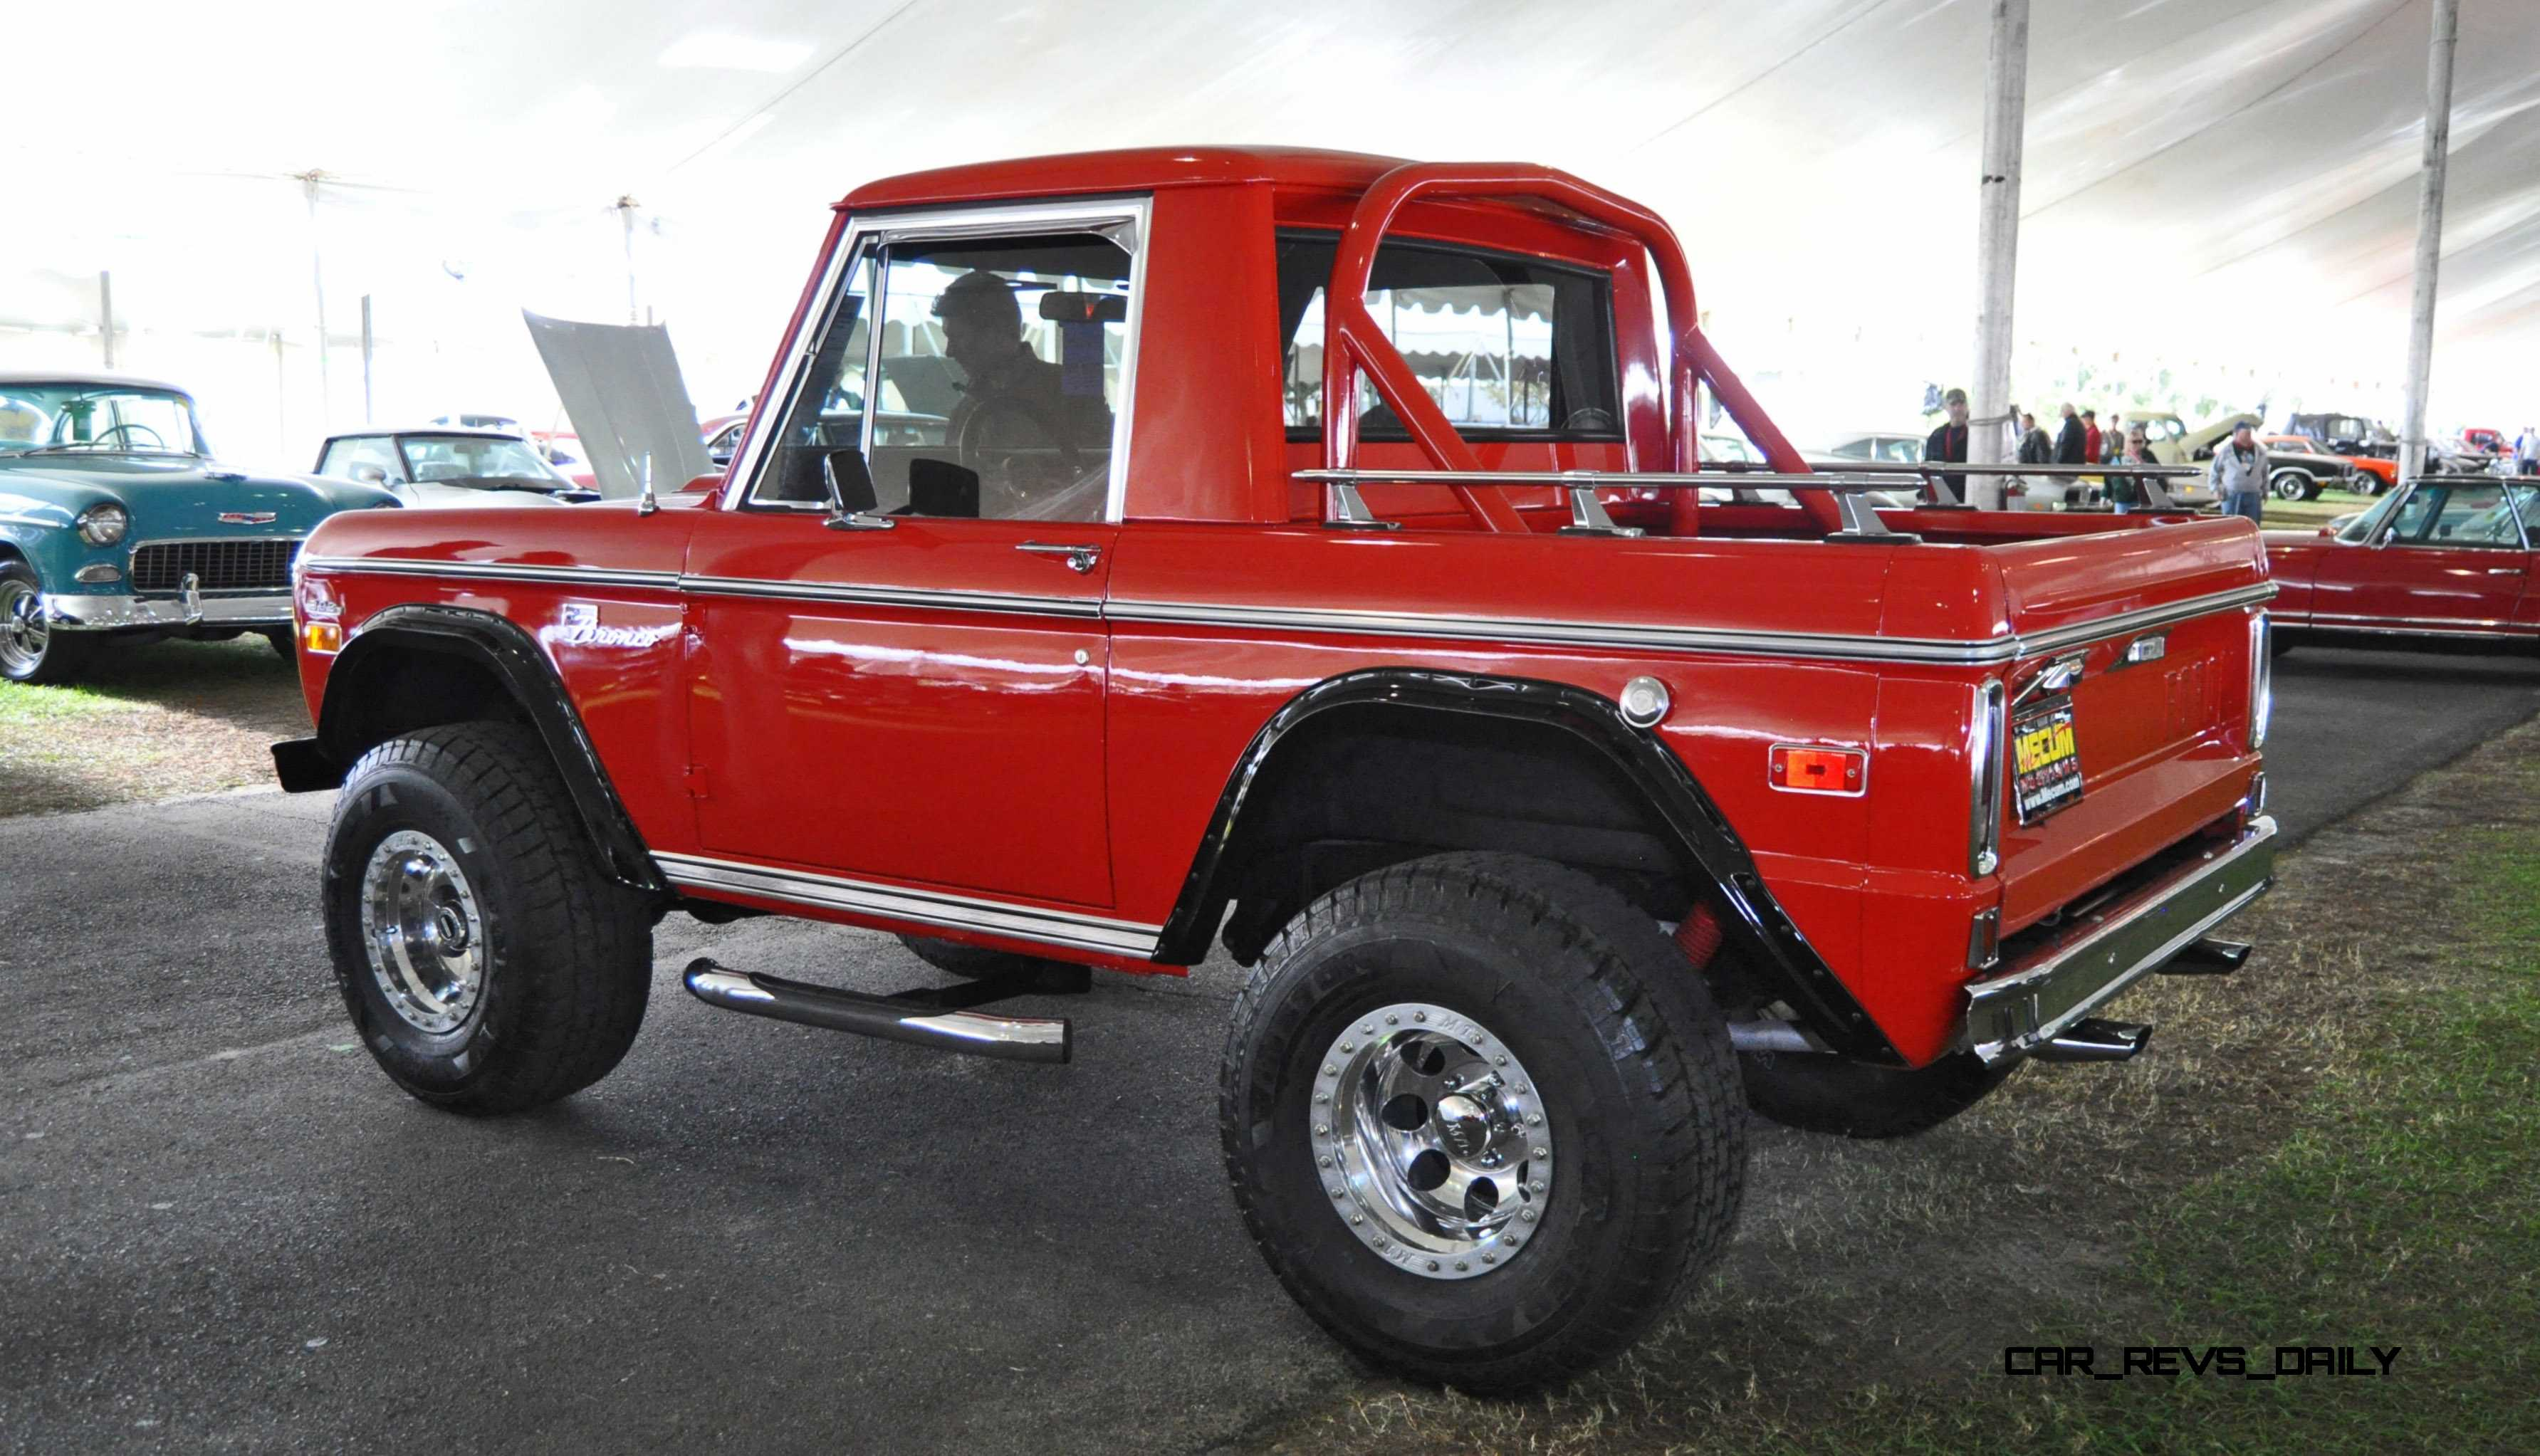 1970 Ford Bronco V8 Pickup HD Wallpapers Download free images and photos [musssic.tk]